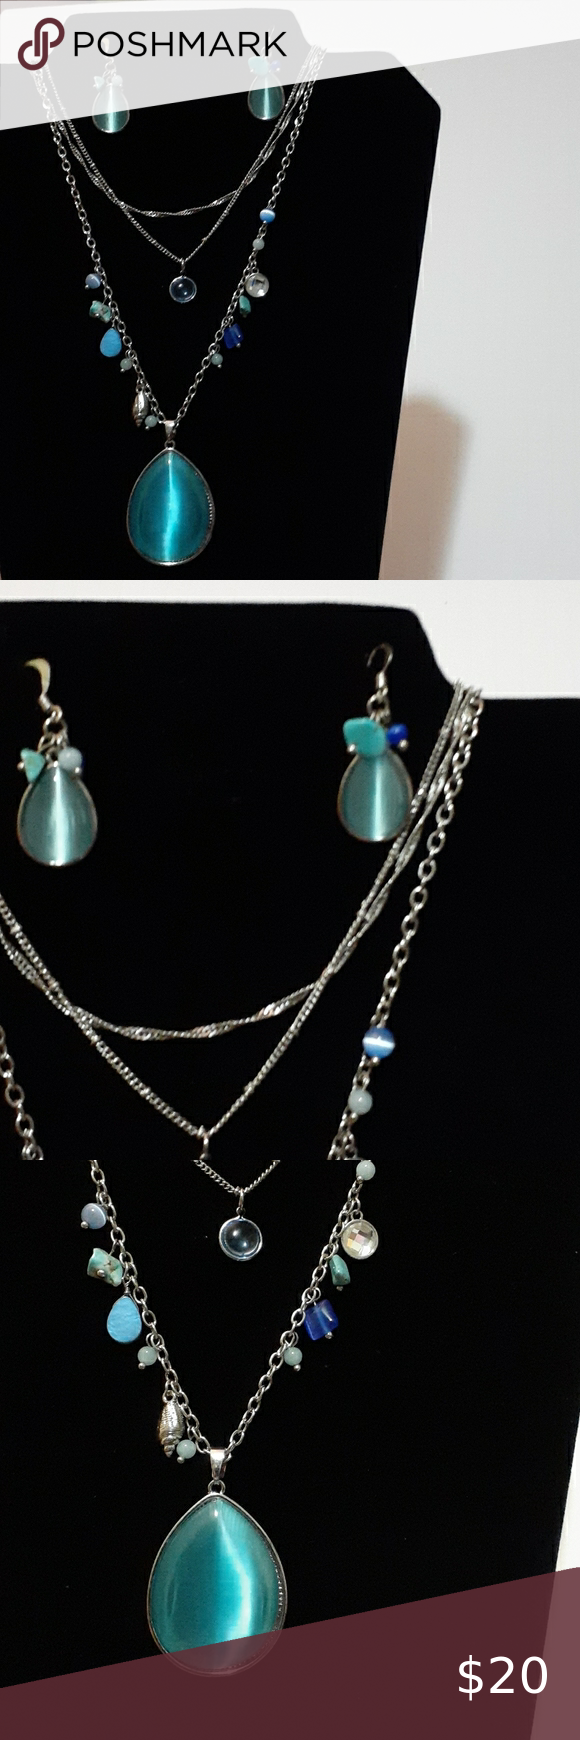 Christopher & Banks Jewelry Matching Necklace & Earring Set Christopher & Banks Jewelry Necklaces